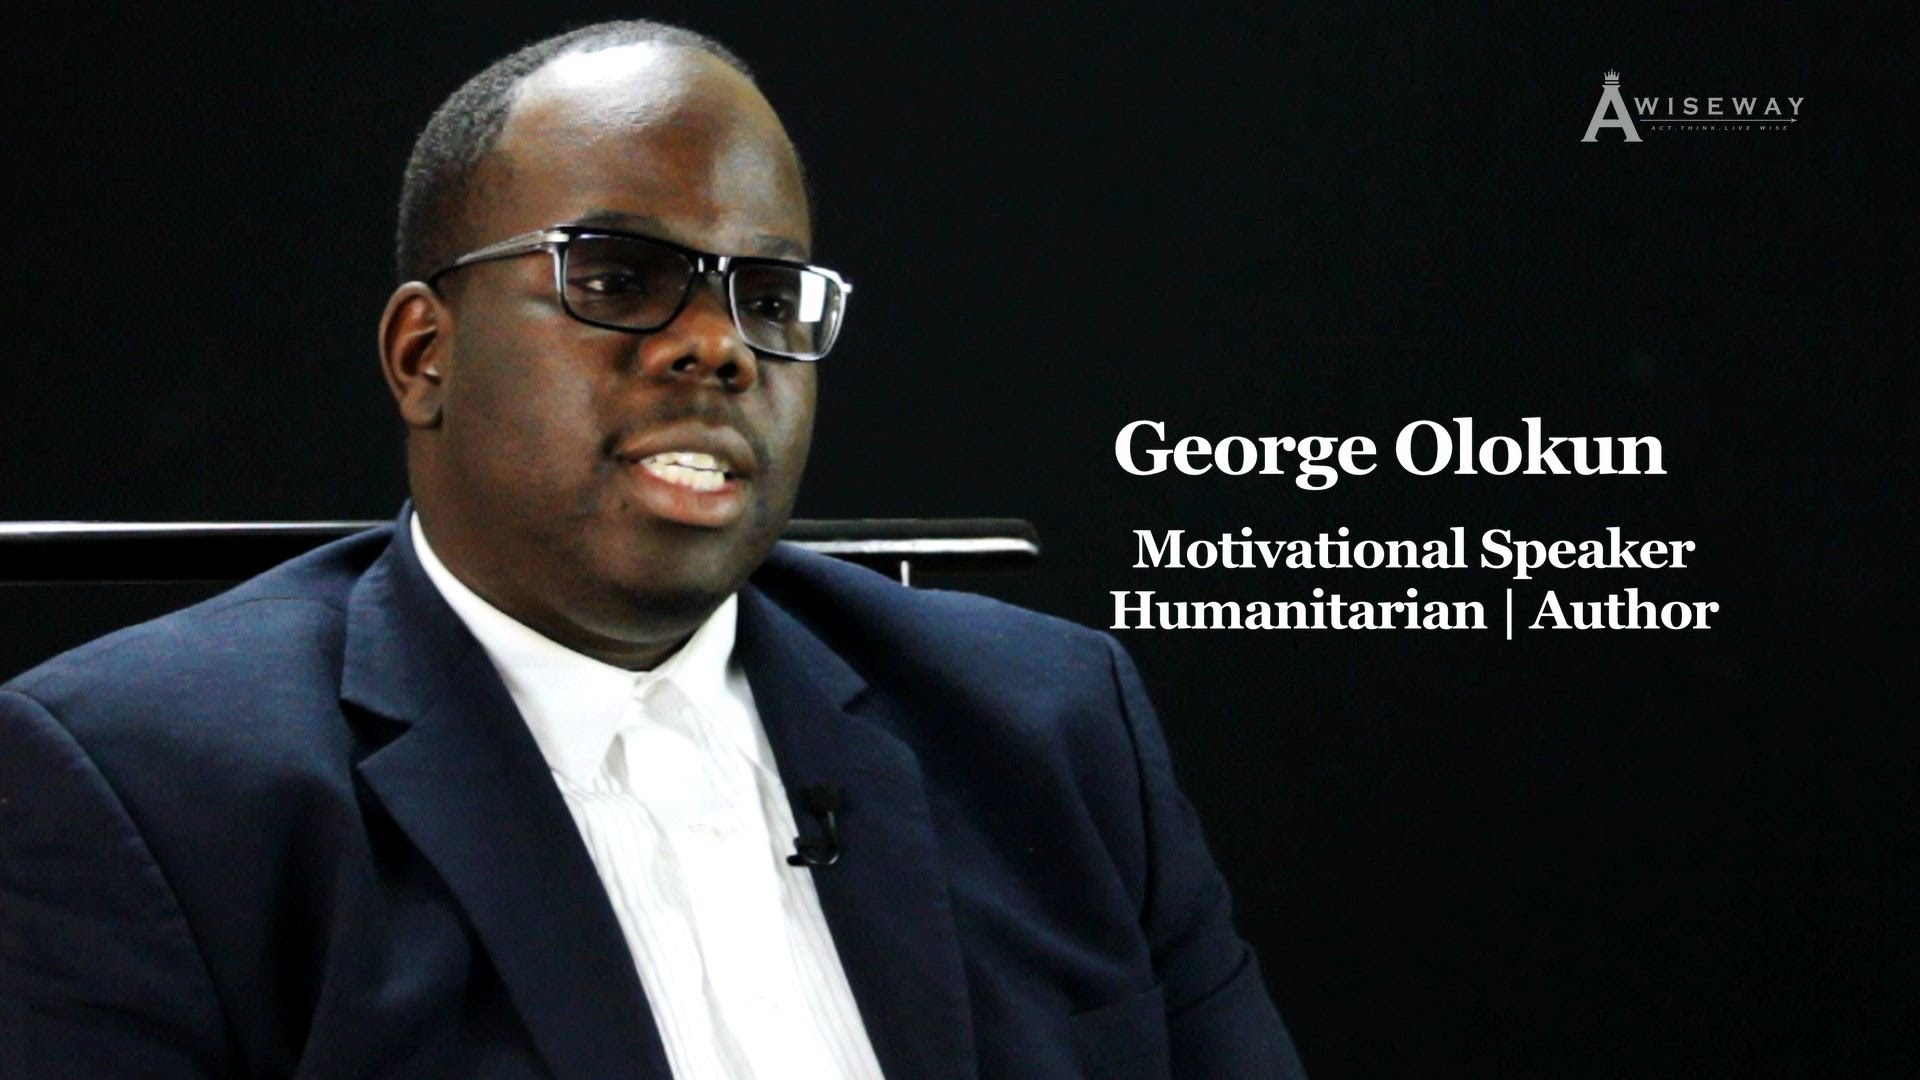 Motivational Speaker Shares the Greatest Challenge in His Work